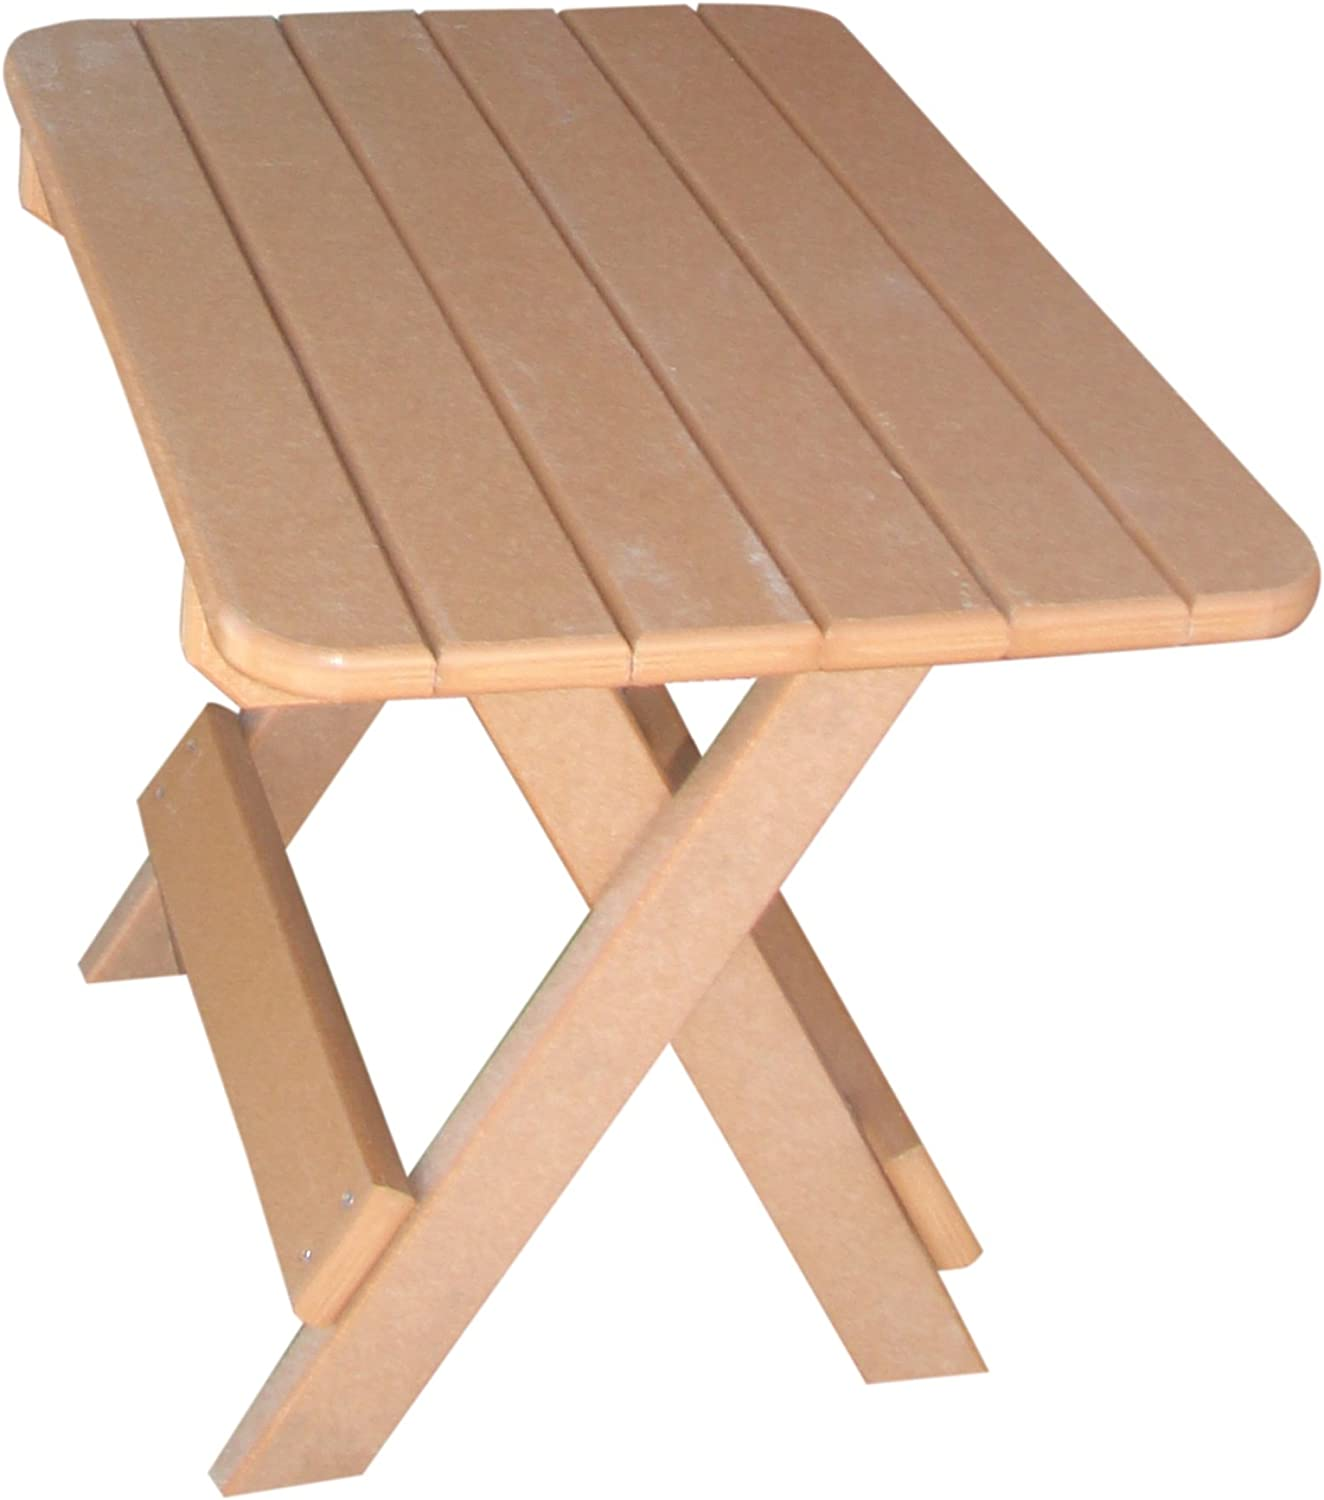 Phat Tommy Recycled Poly Resin Folding Side Table – Durable & Eco-Friendly Patio Furniture Matches Adirondack, Tan